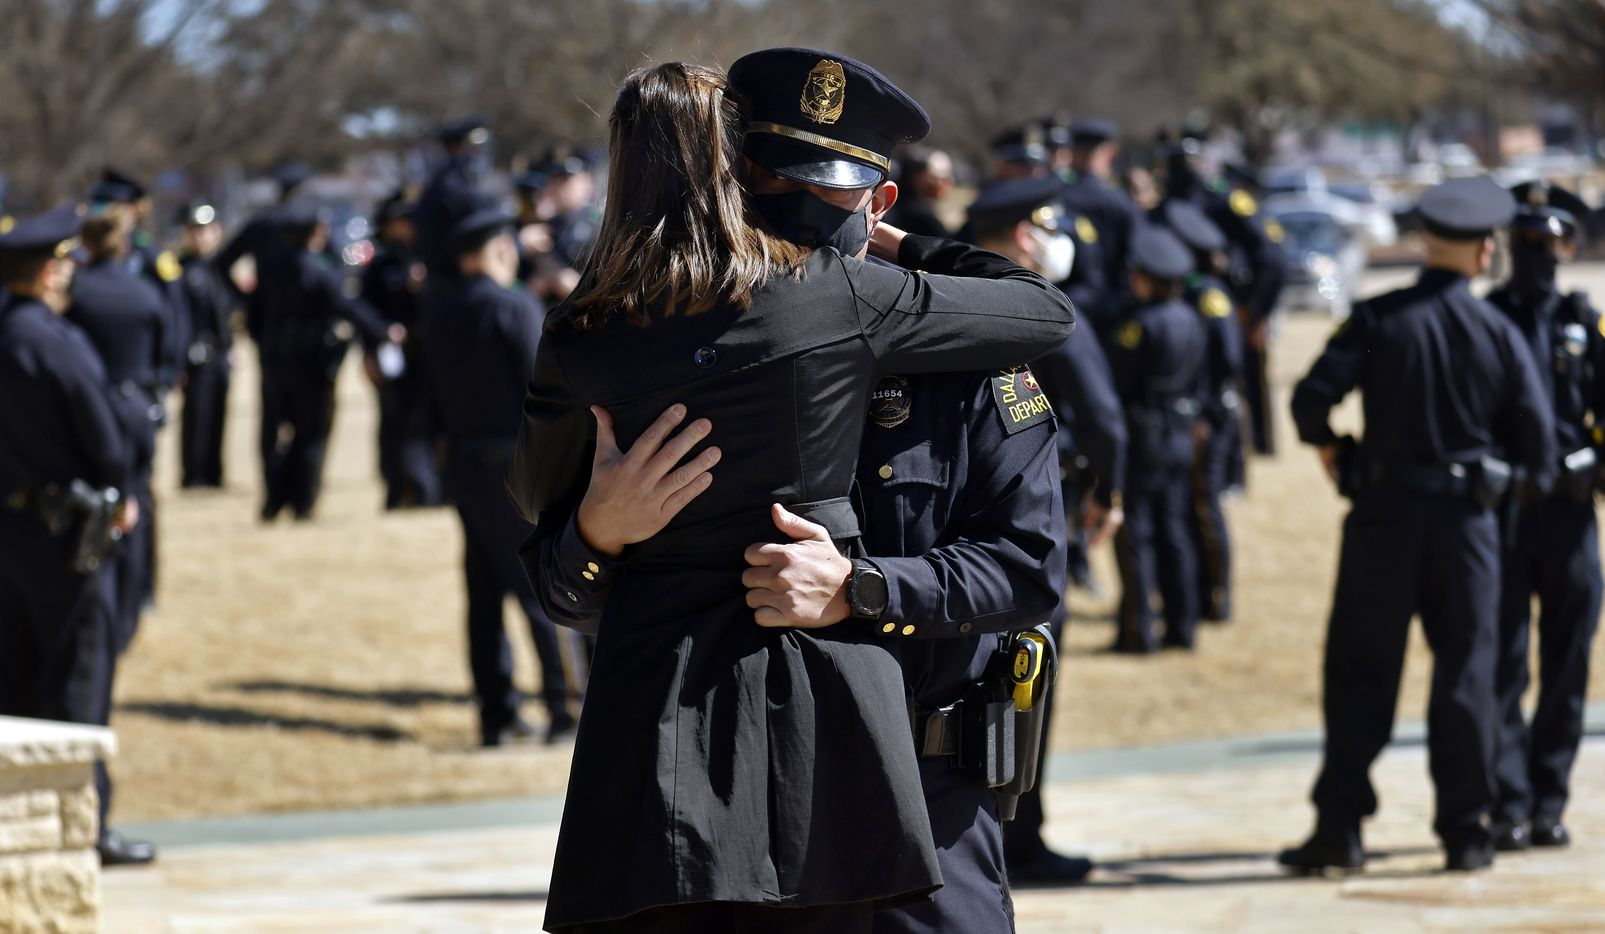 Dallas Police Lt. Dr. Alex Eastman comforts a family member following the funeral service for Dallas Police officer Mitchell Penton at Prestonwood Baptist Church in Plano, Monday, February 22, 2021. Penton was killed Saturday, Feb. 13, 2021, in a crash involving a drunk driving suspect. (Tom Fox/The Dallas Morning News)